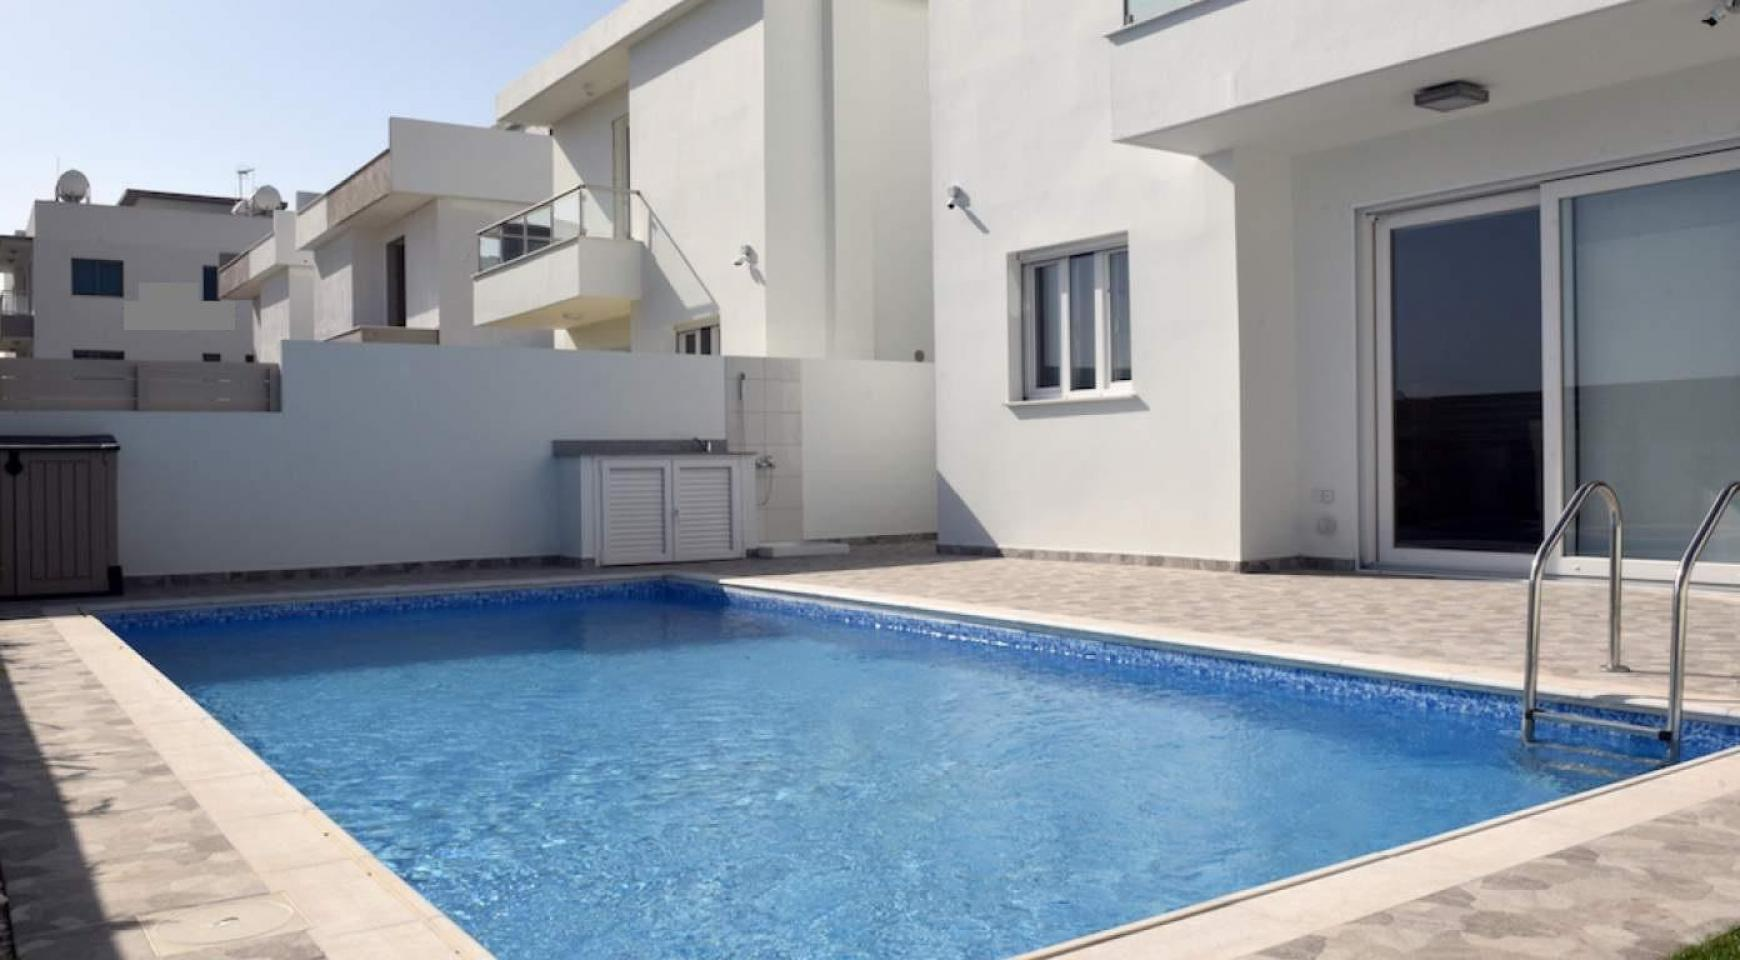 4 Bedroom House in Leivadia Area - 6